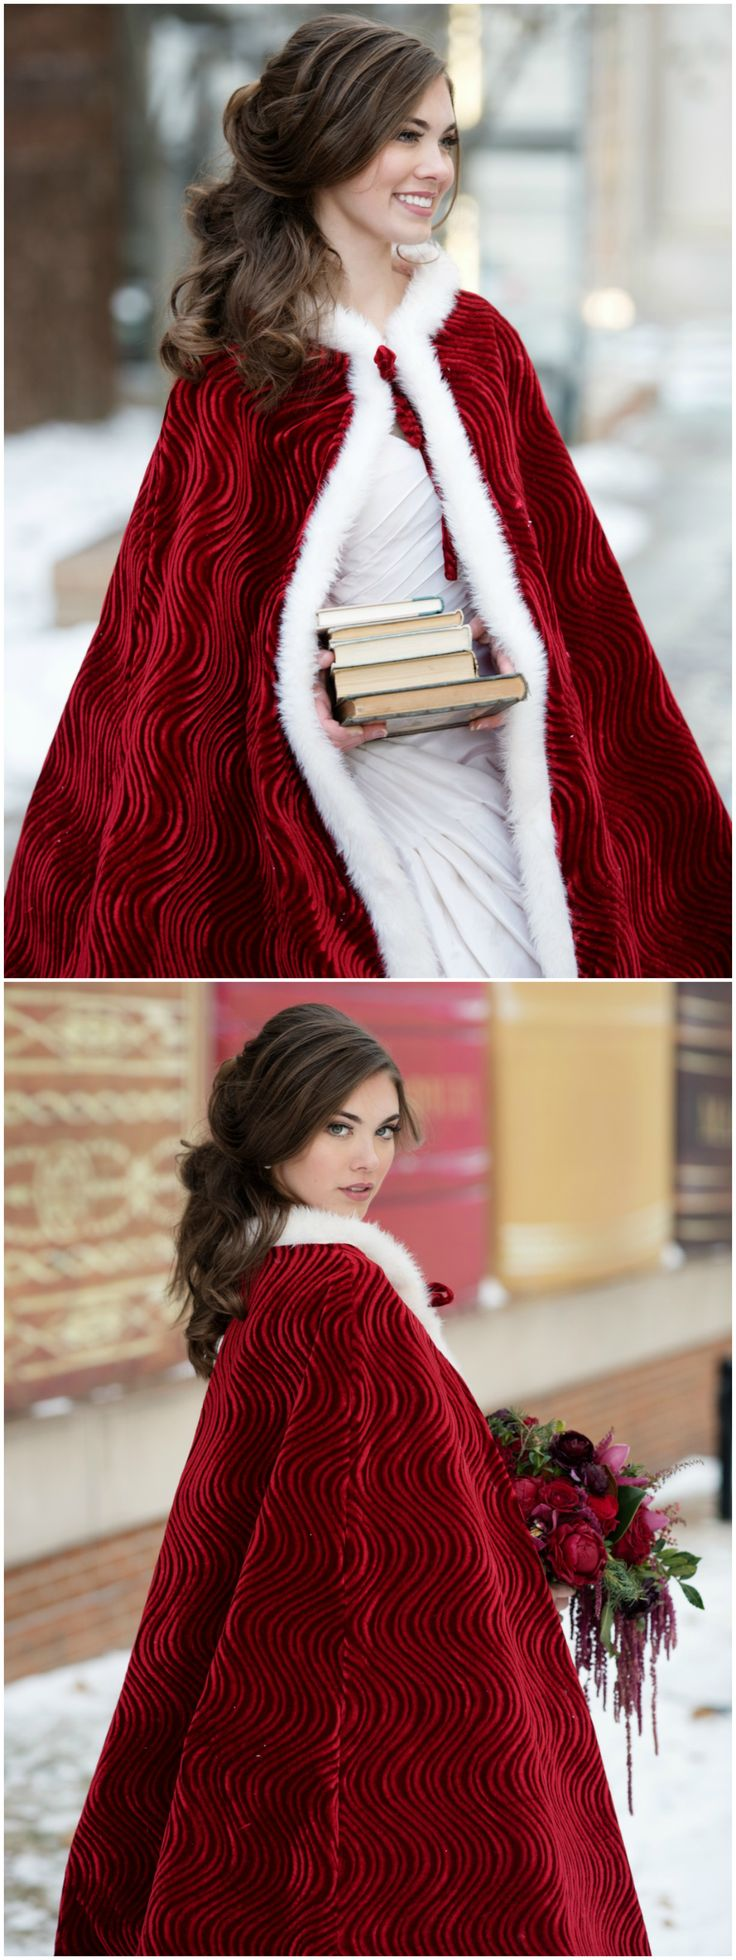 Winter wedding fashion, red velvet cloak, white fur lined cape, curly bridal hair // Melissa Sigler Photography